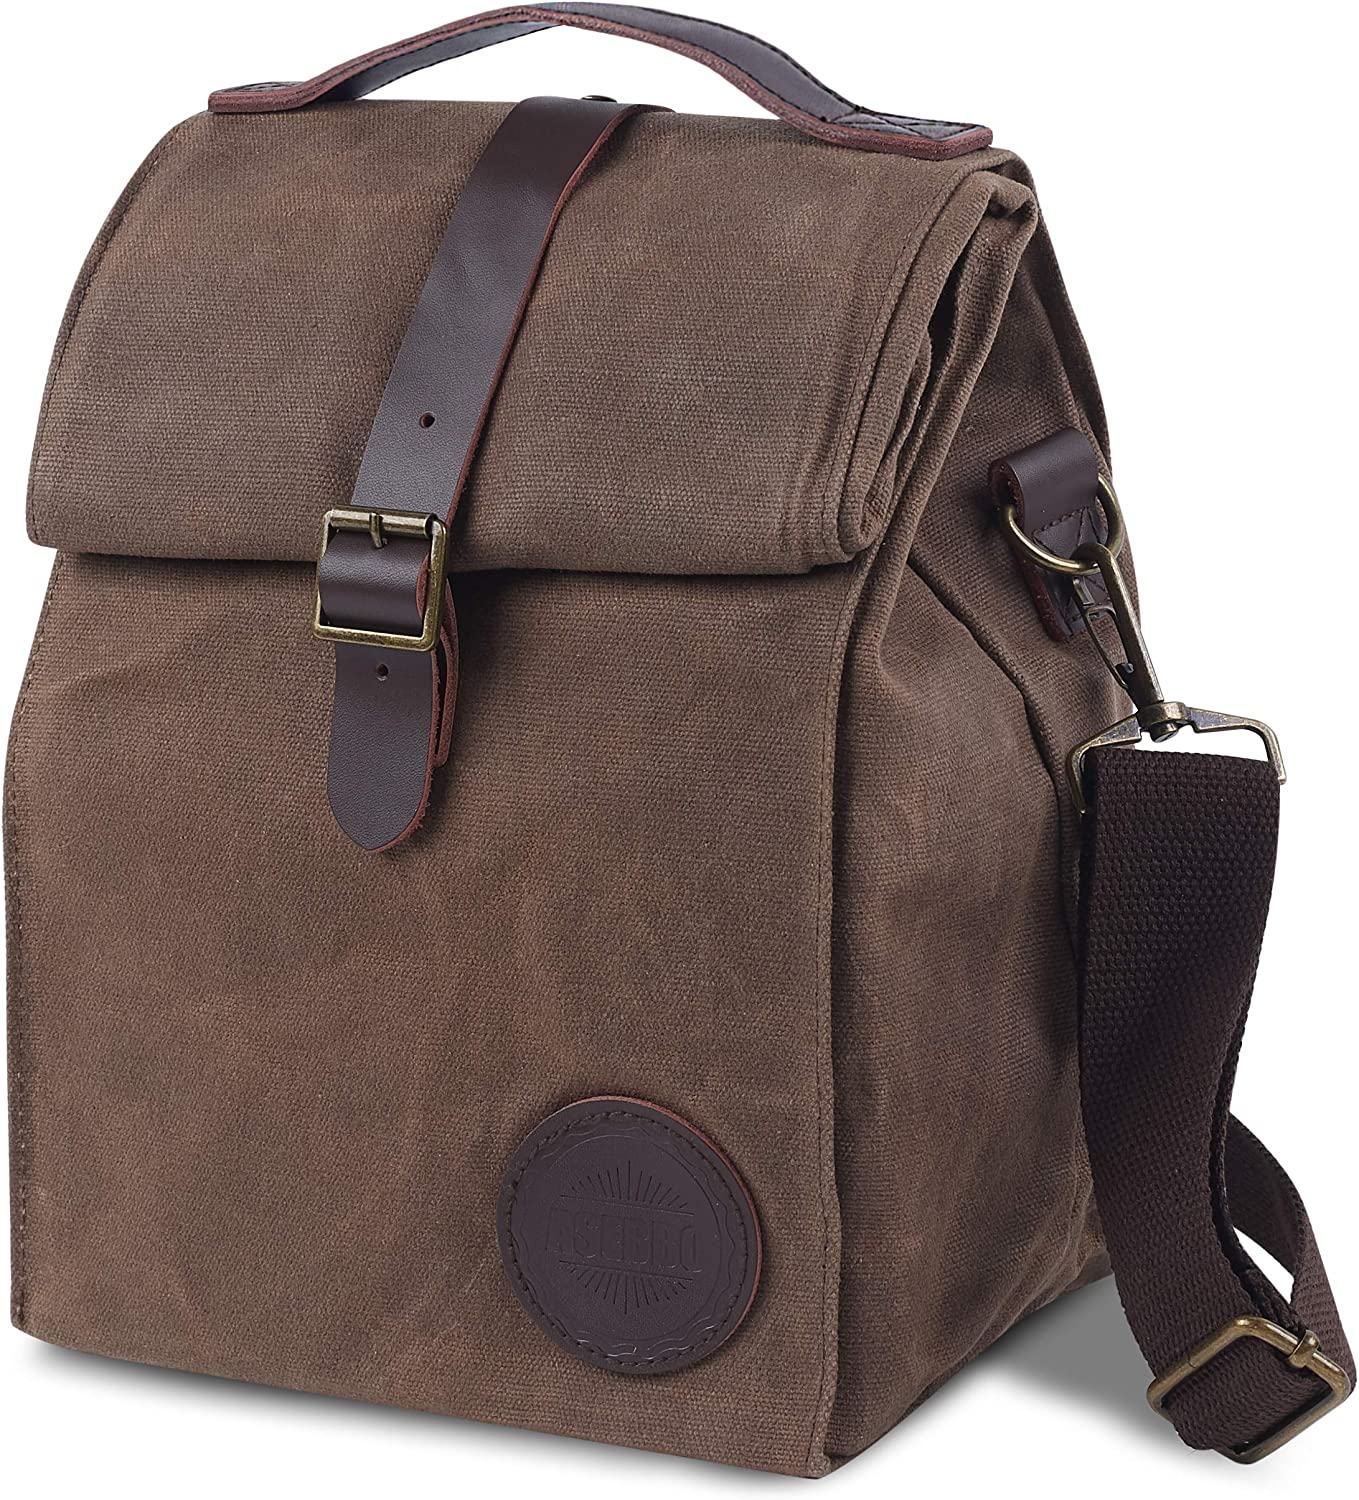 Insulated Waxed Canvas Lunch Bag by ASEBBO, Lunch Box for Women, Men with Genuine Leather Handle and Strong Buckle-Closure to Keep Your Food Cool, Lunch Tote with Adjustable Strap (Brown 2.0 IMPROVED)